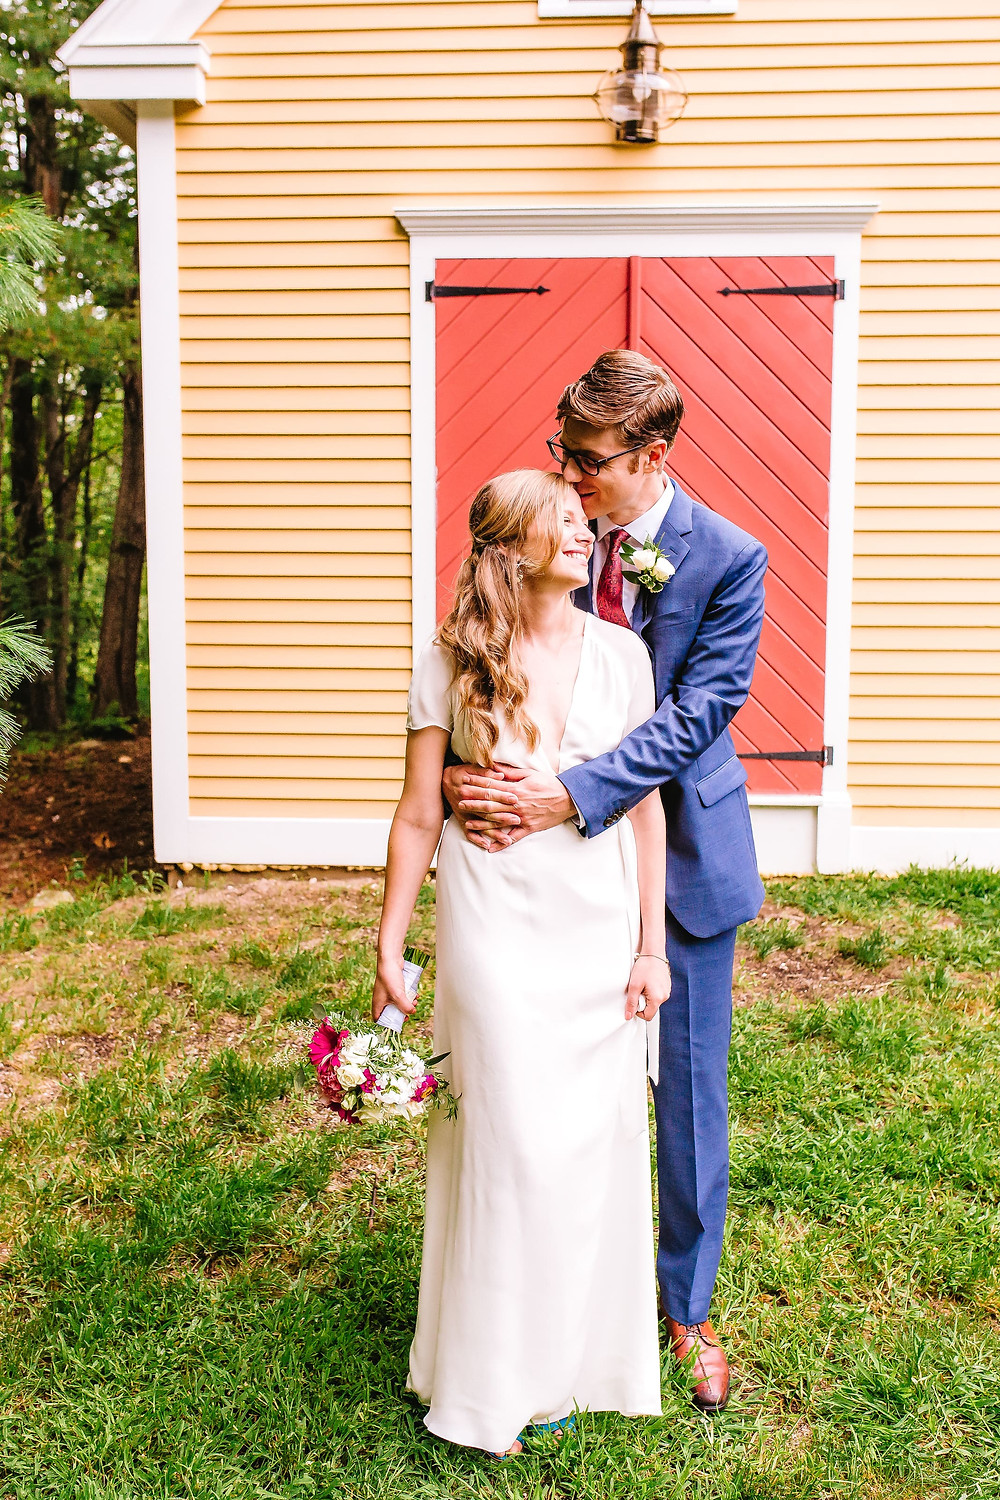 Elopement packages in Maine